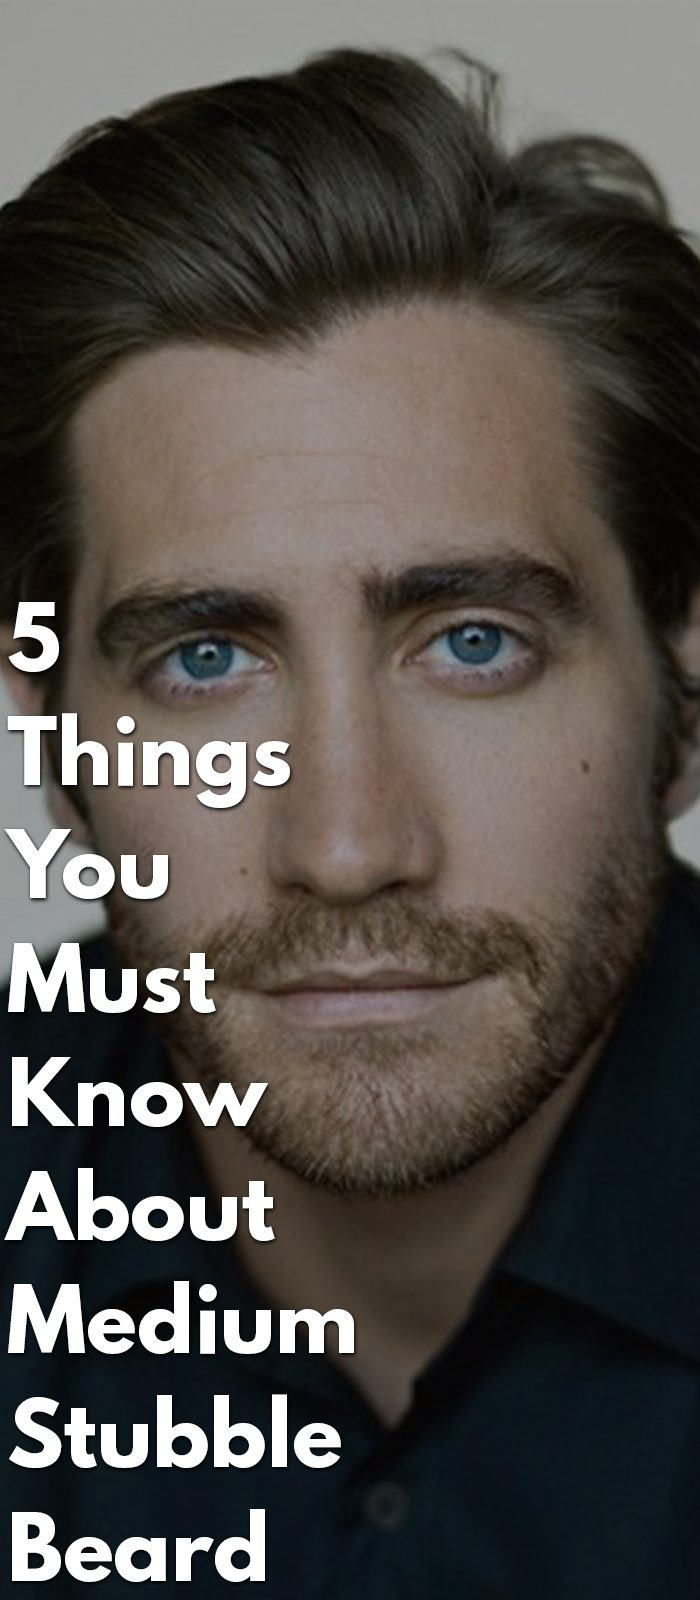 5-Things-You-Must-Know-About-Medium-Stubble-Beard.